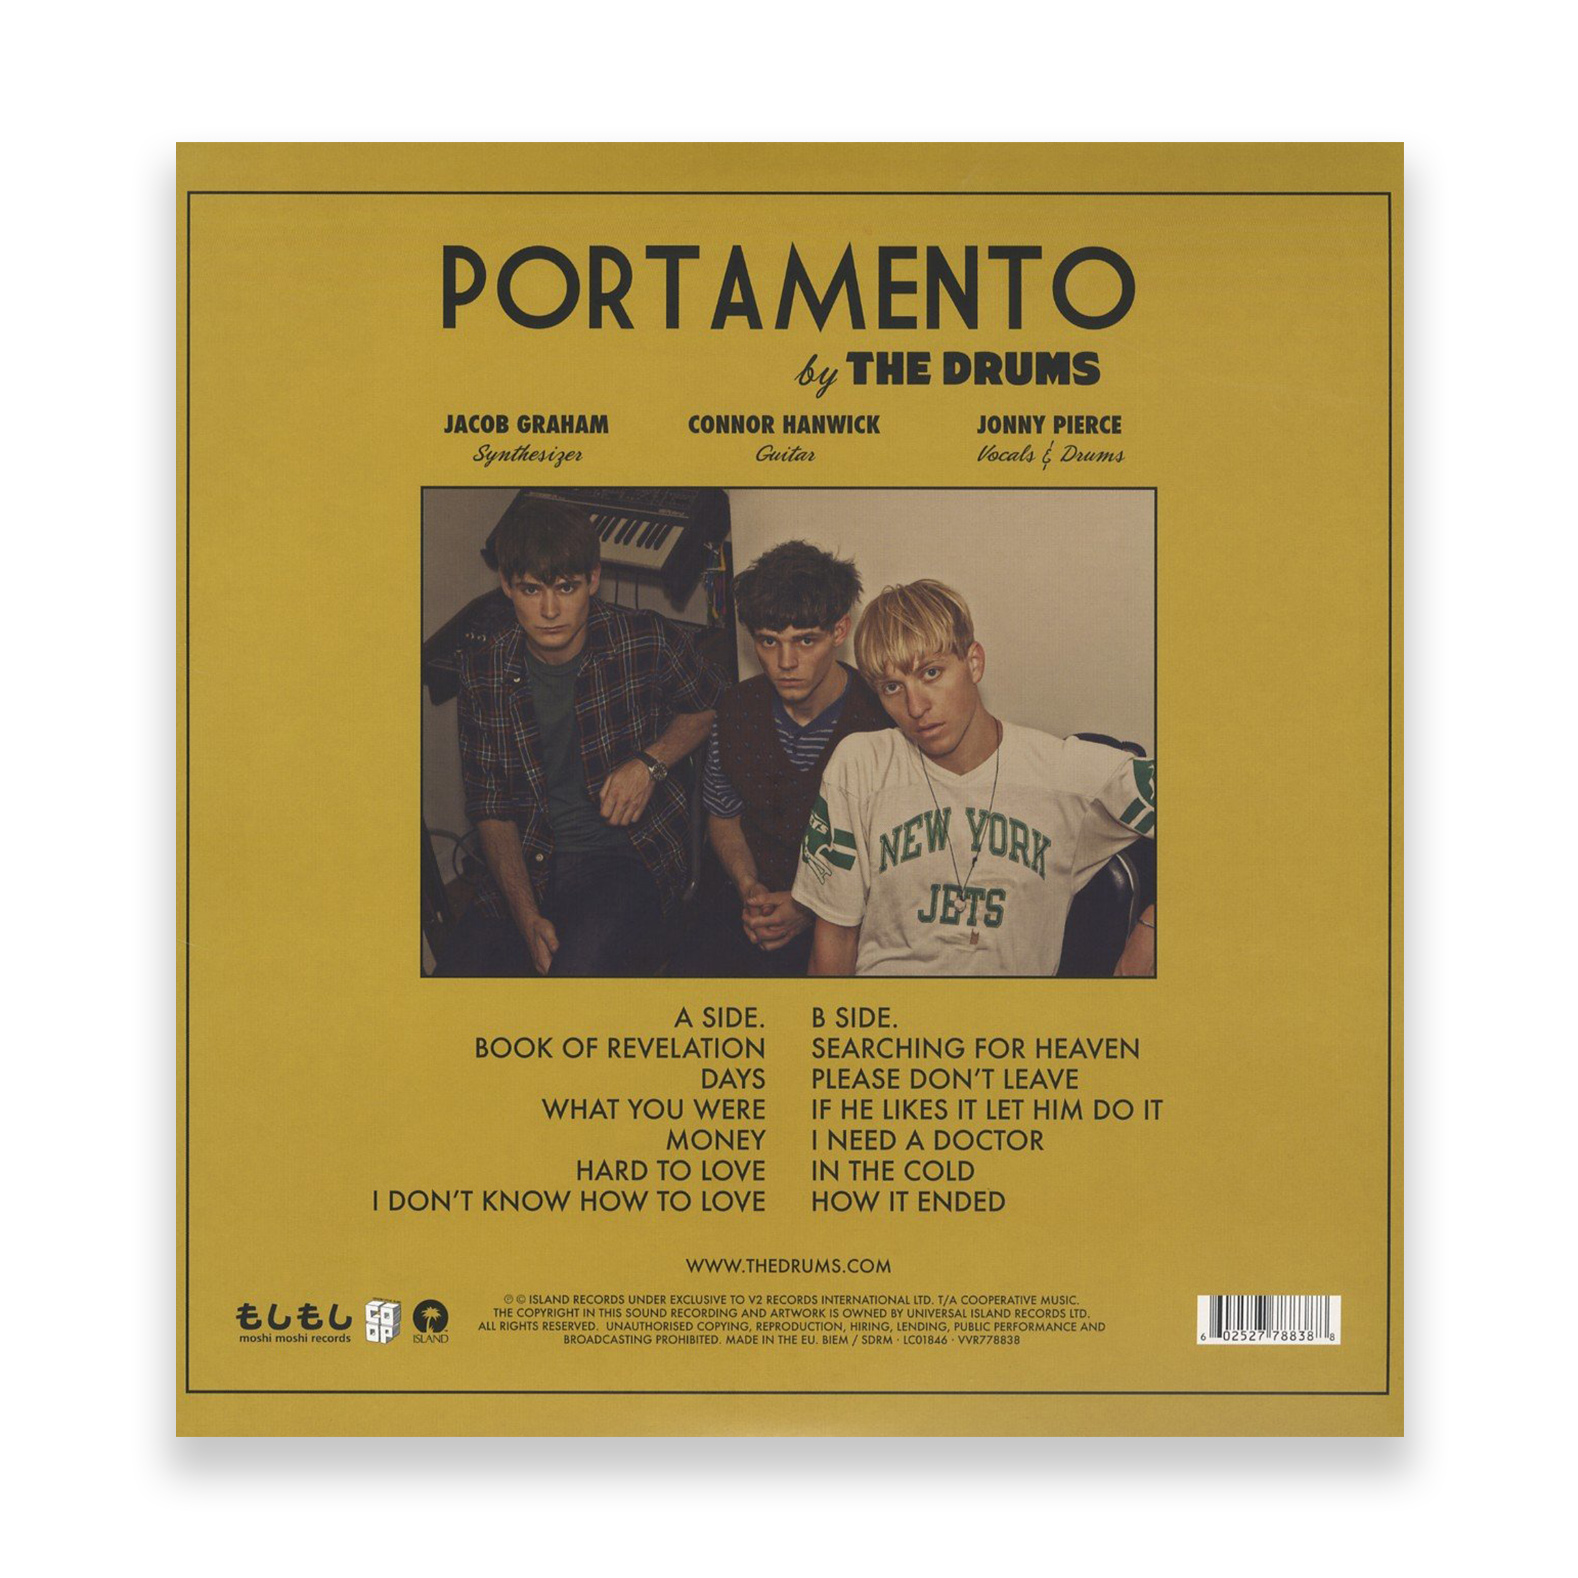 The Drums - 'Portamento' (Island Records)